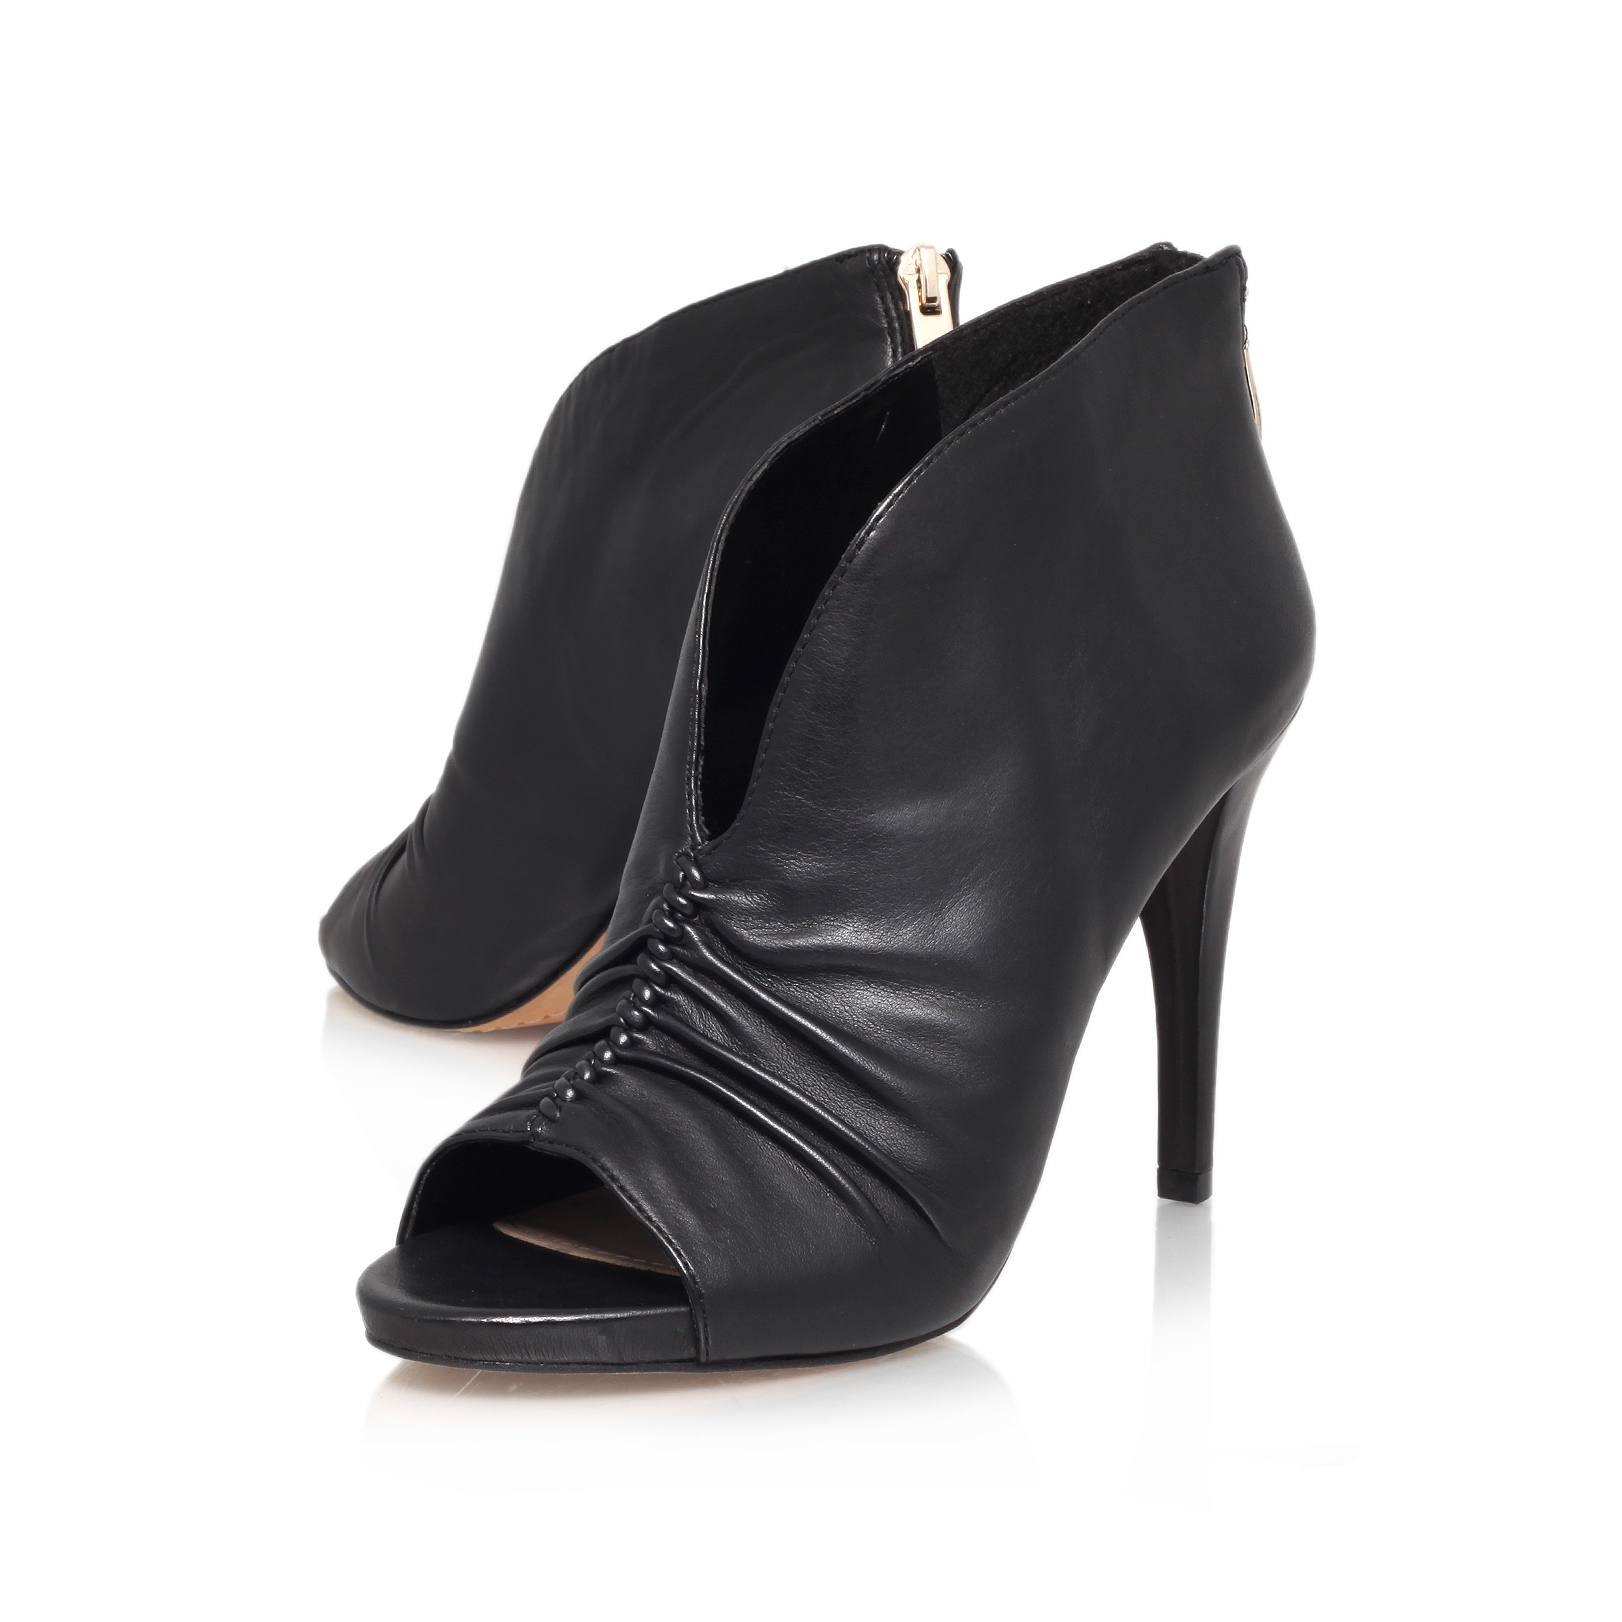 Vince Camuto Fluttery Black High Heel Boots By Vince Camuto